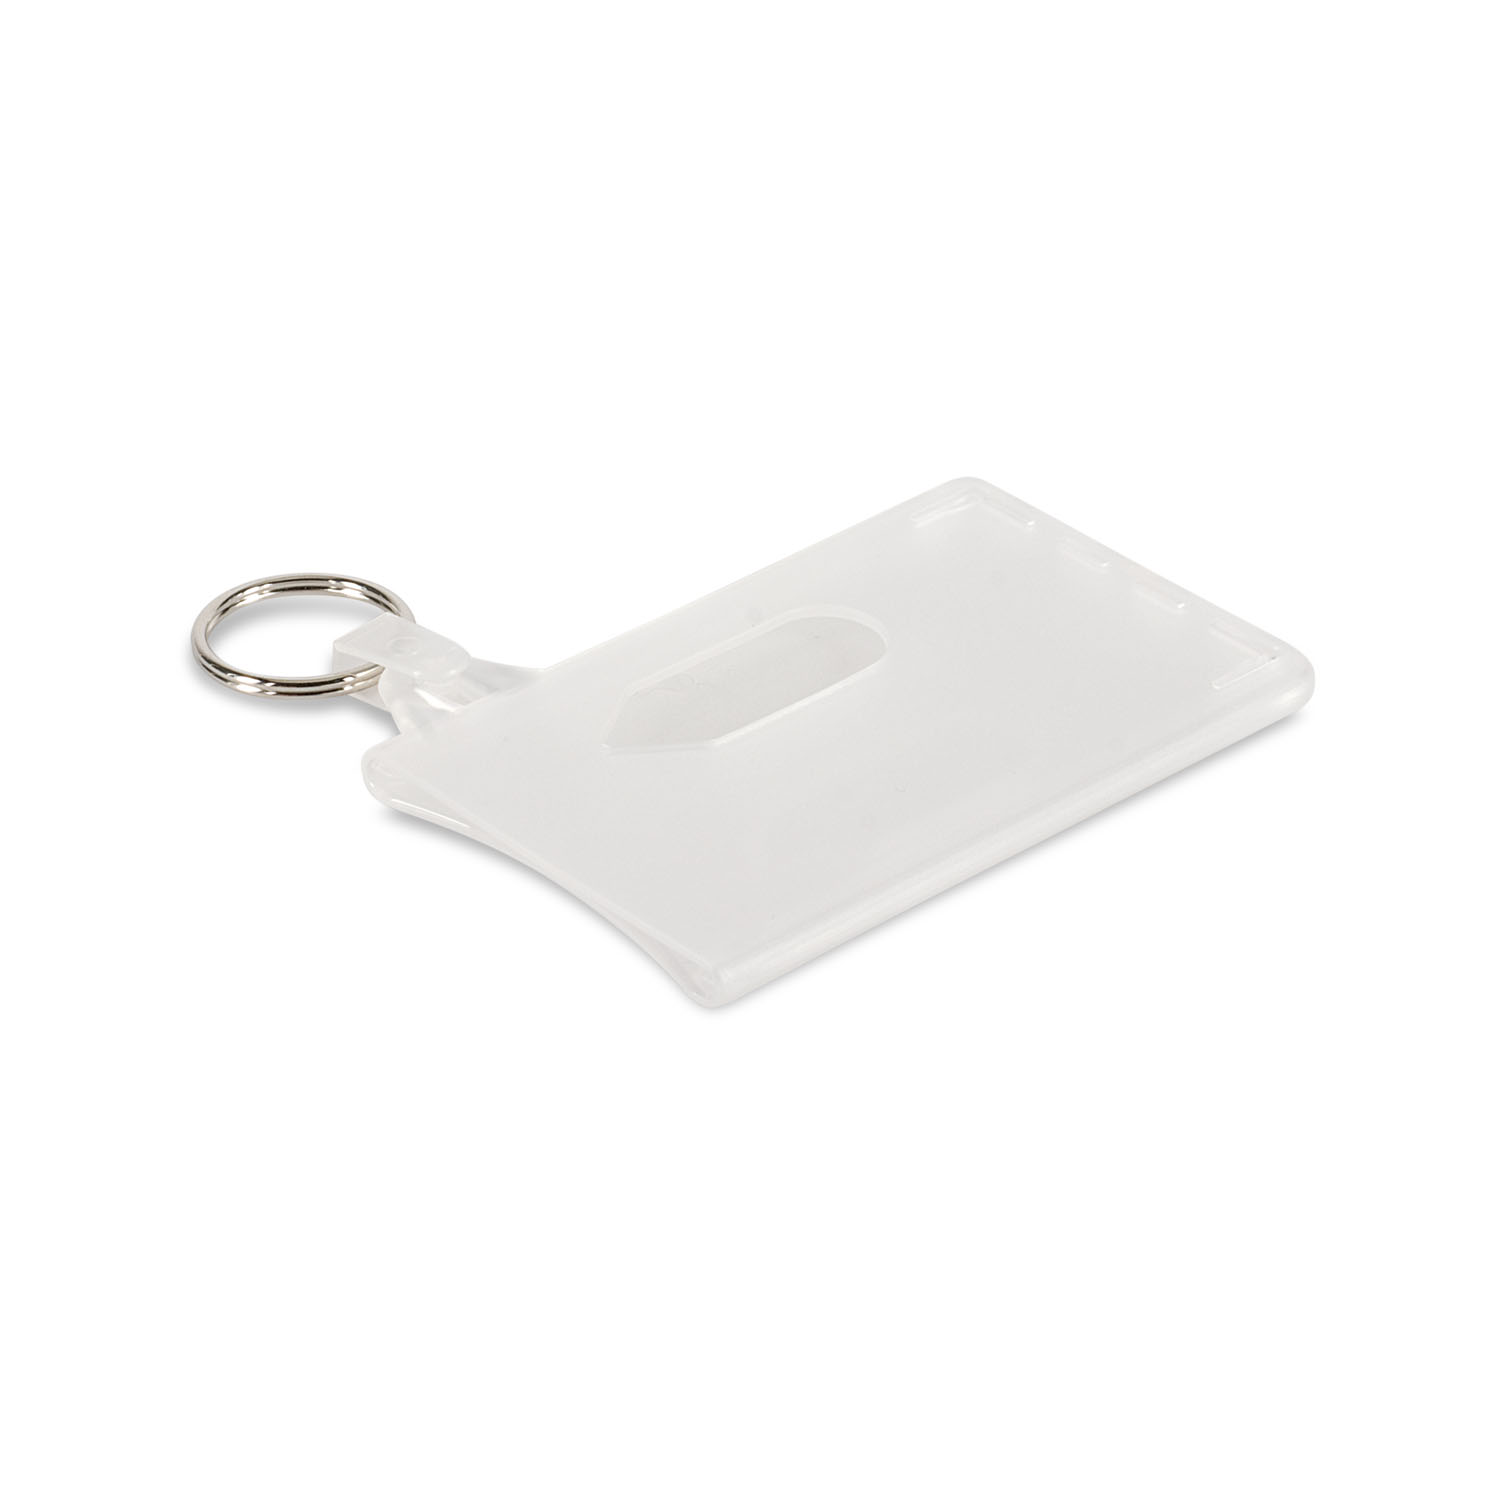 Card Holder Key Ring